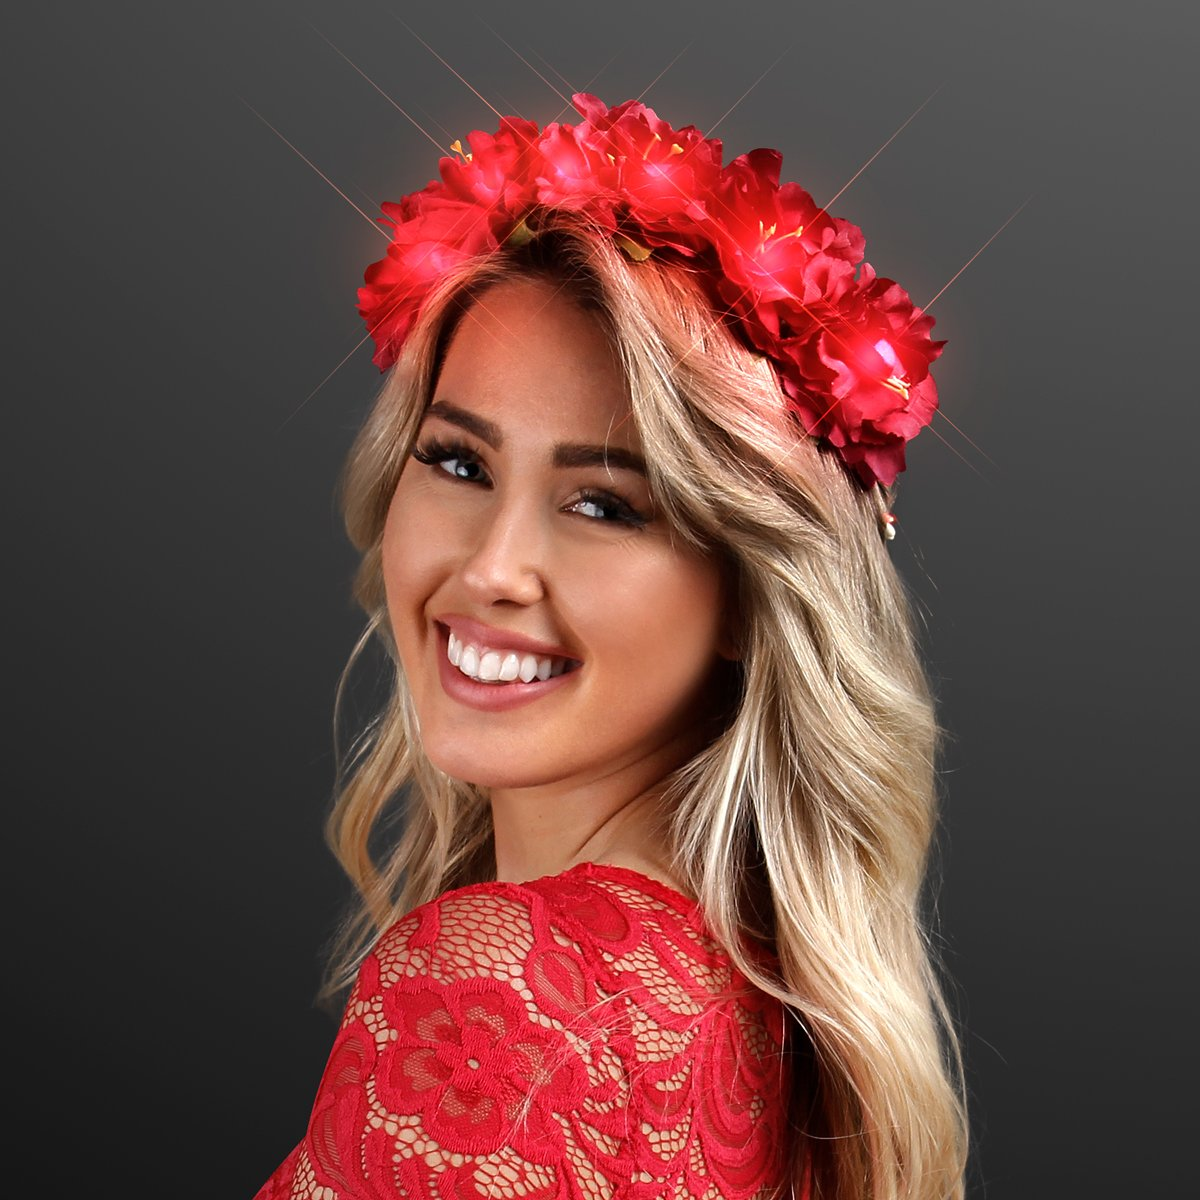 Light Up Red Flower Crown Headband Li with for LED 2021 spring and summer new Seattle Mall Festivals